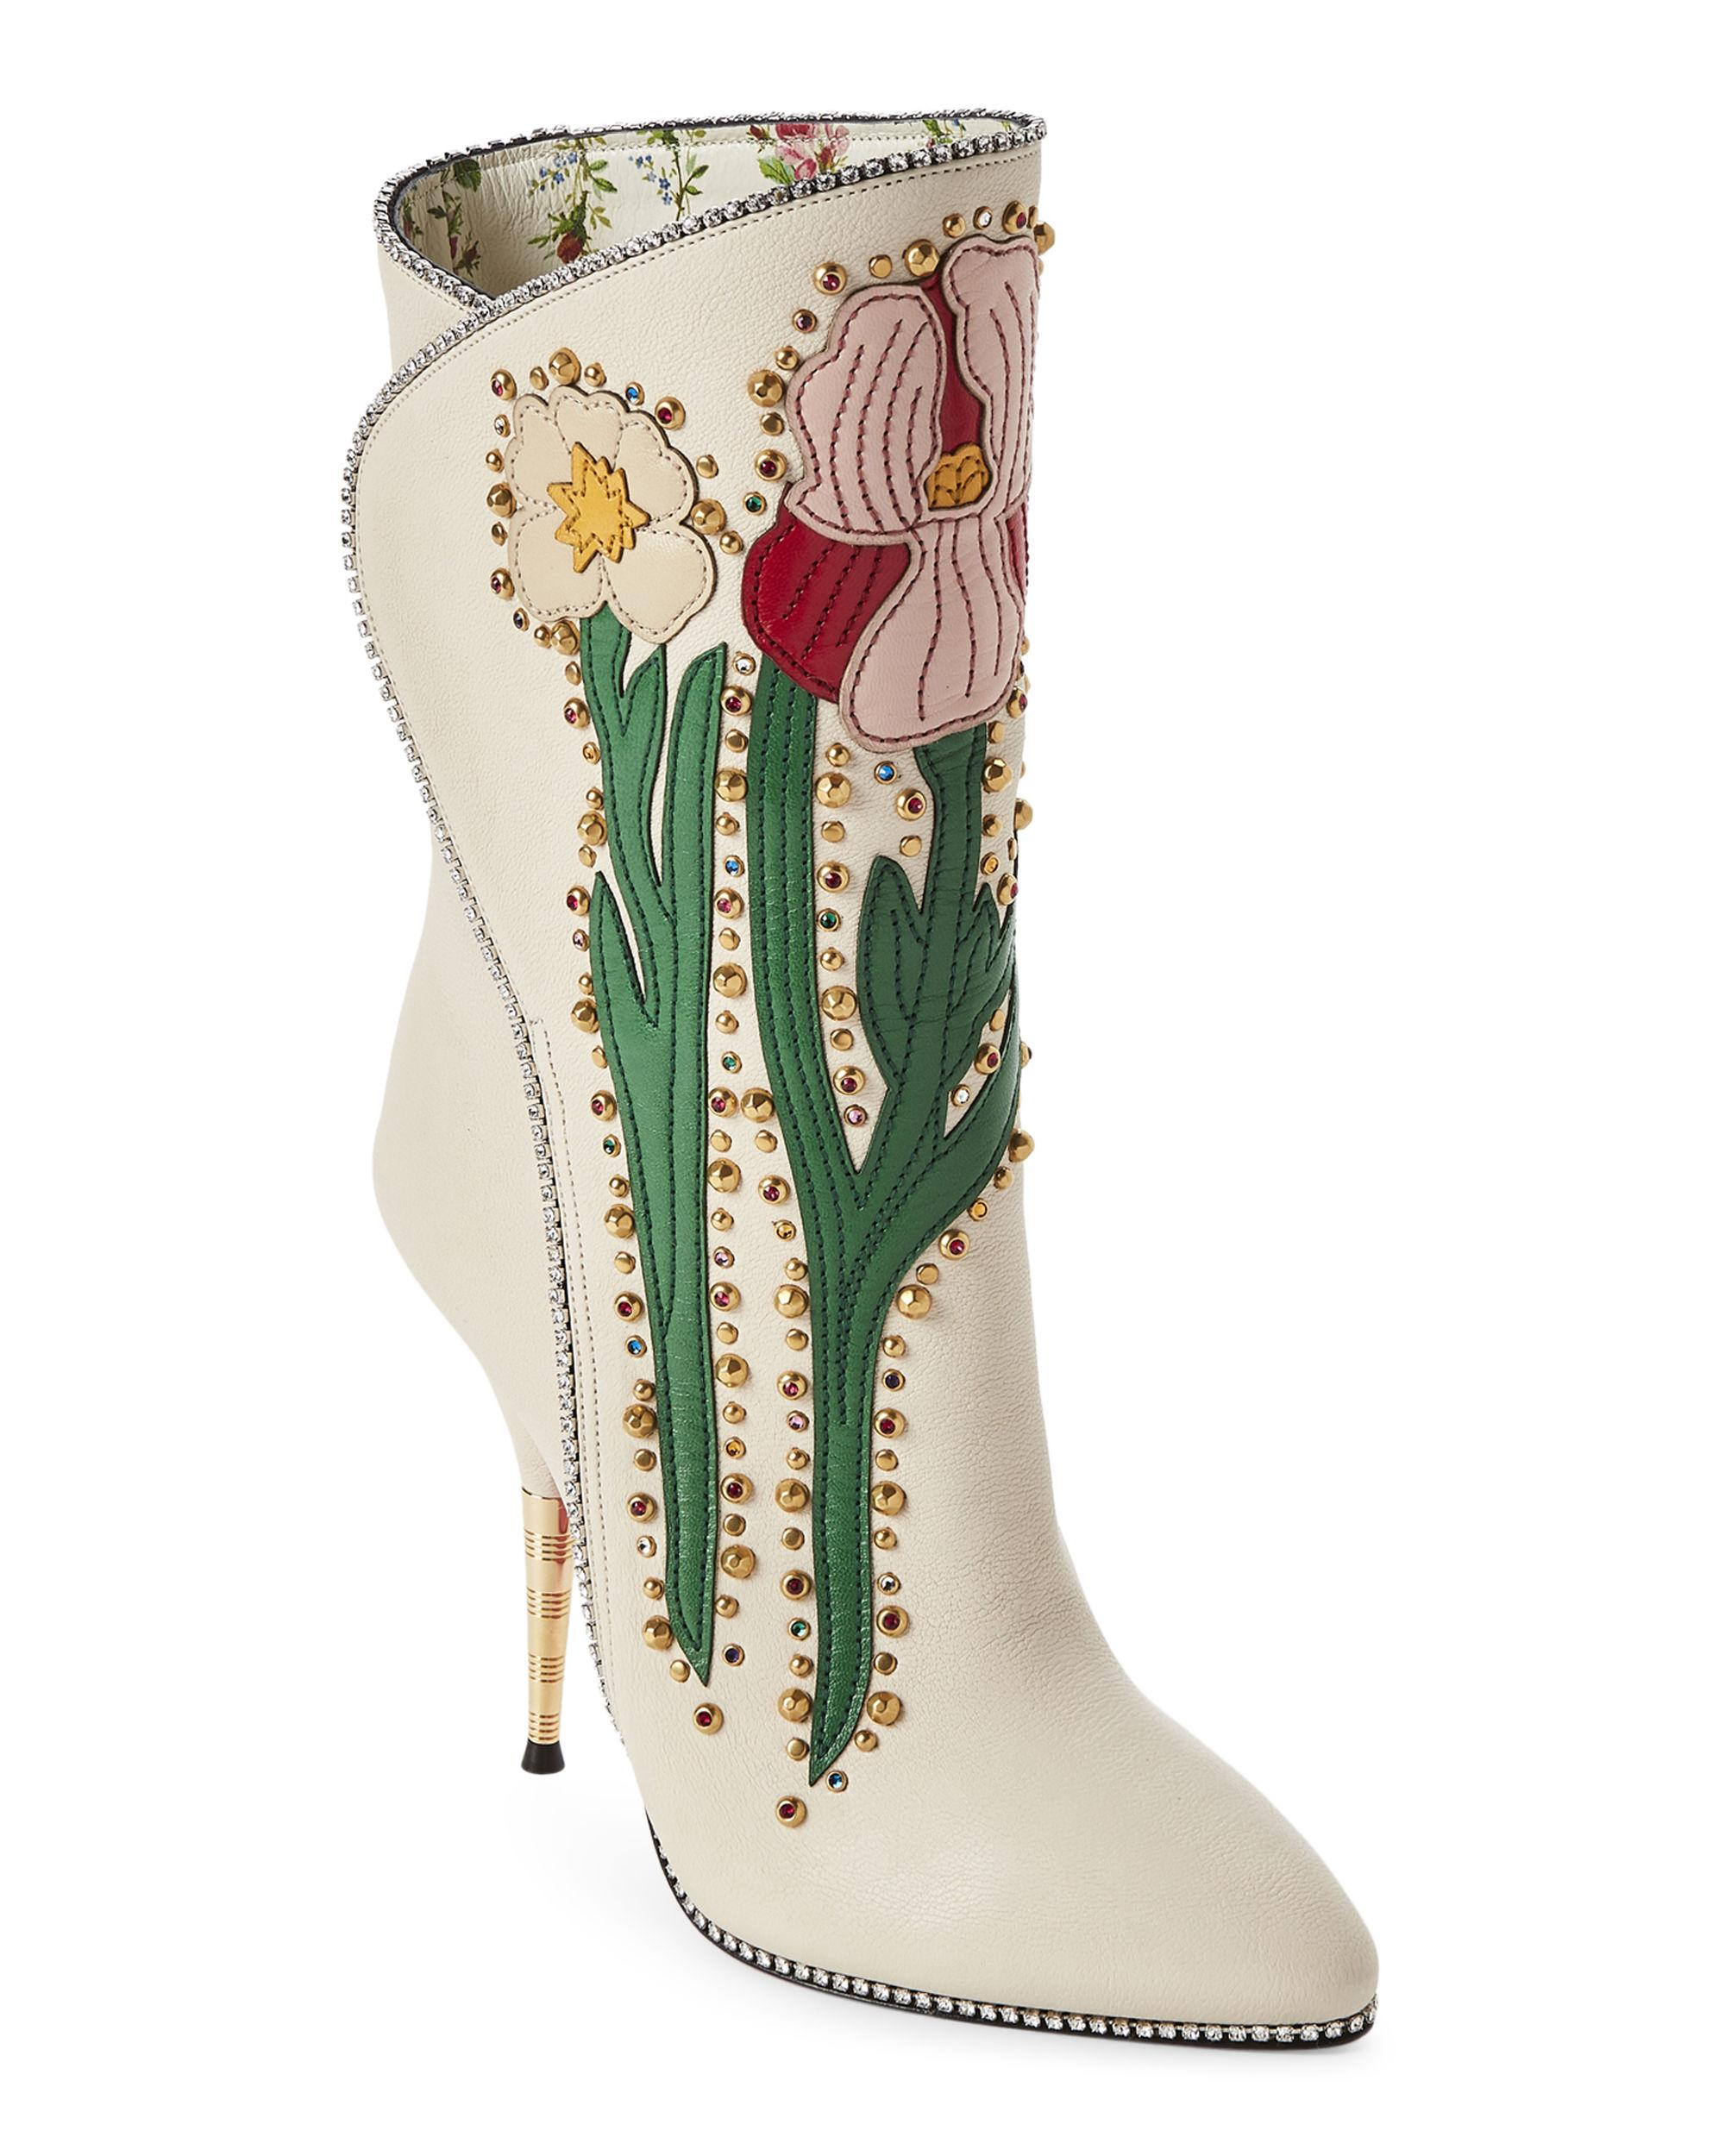 9ff4e19b18a Gucci Multicolor Off-white Floral Embellished Western Leather Boots